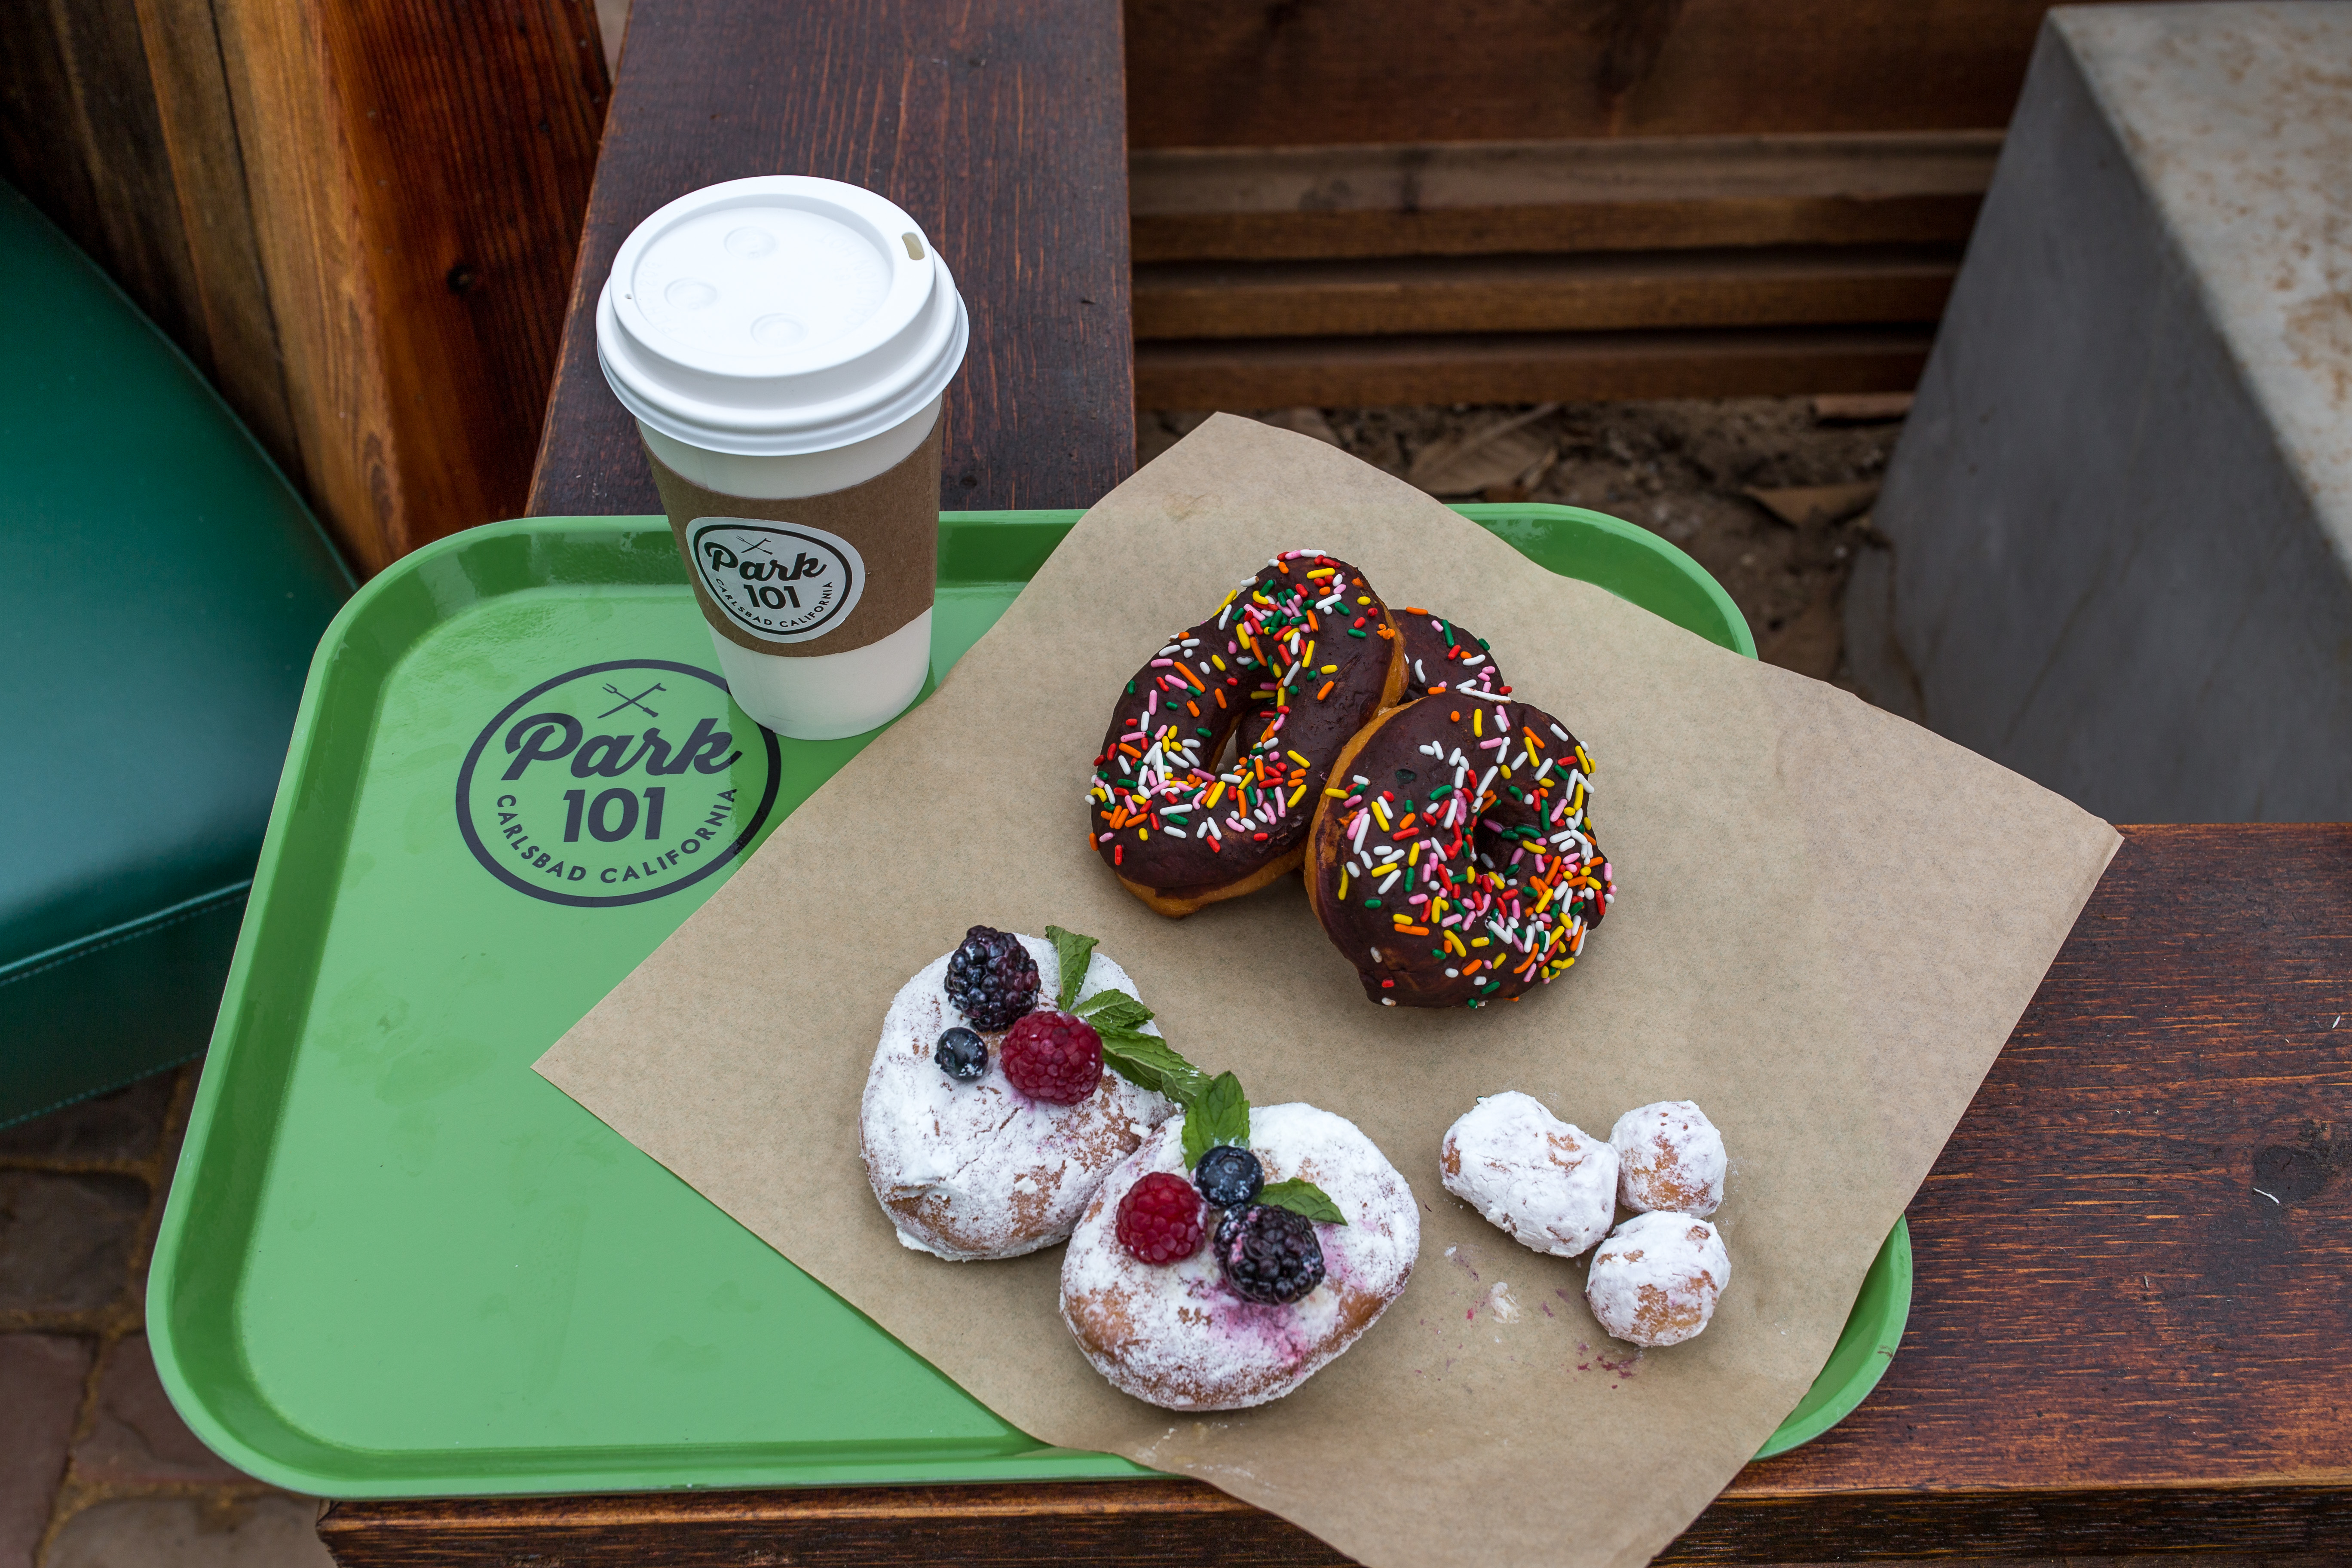 park 101 carlsbad ca donuts coffee